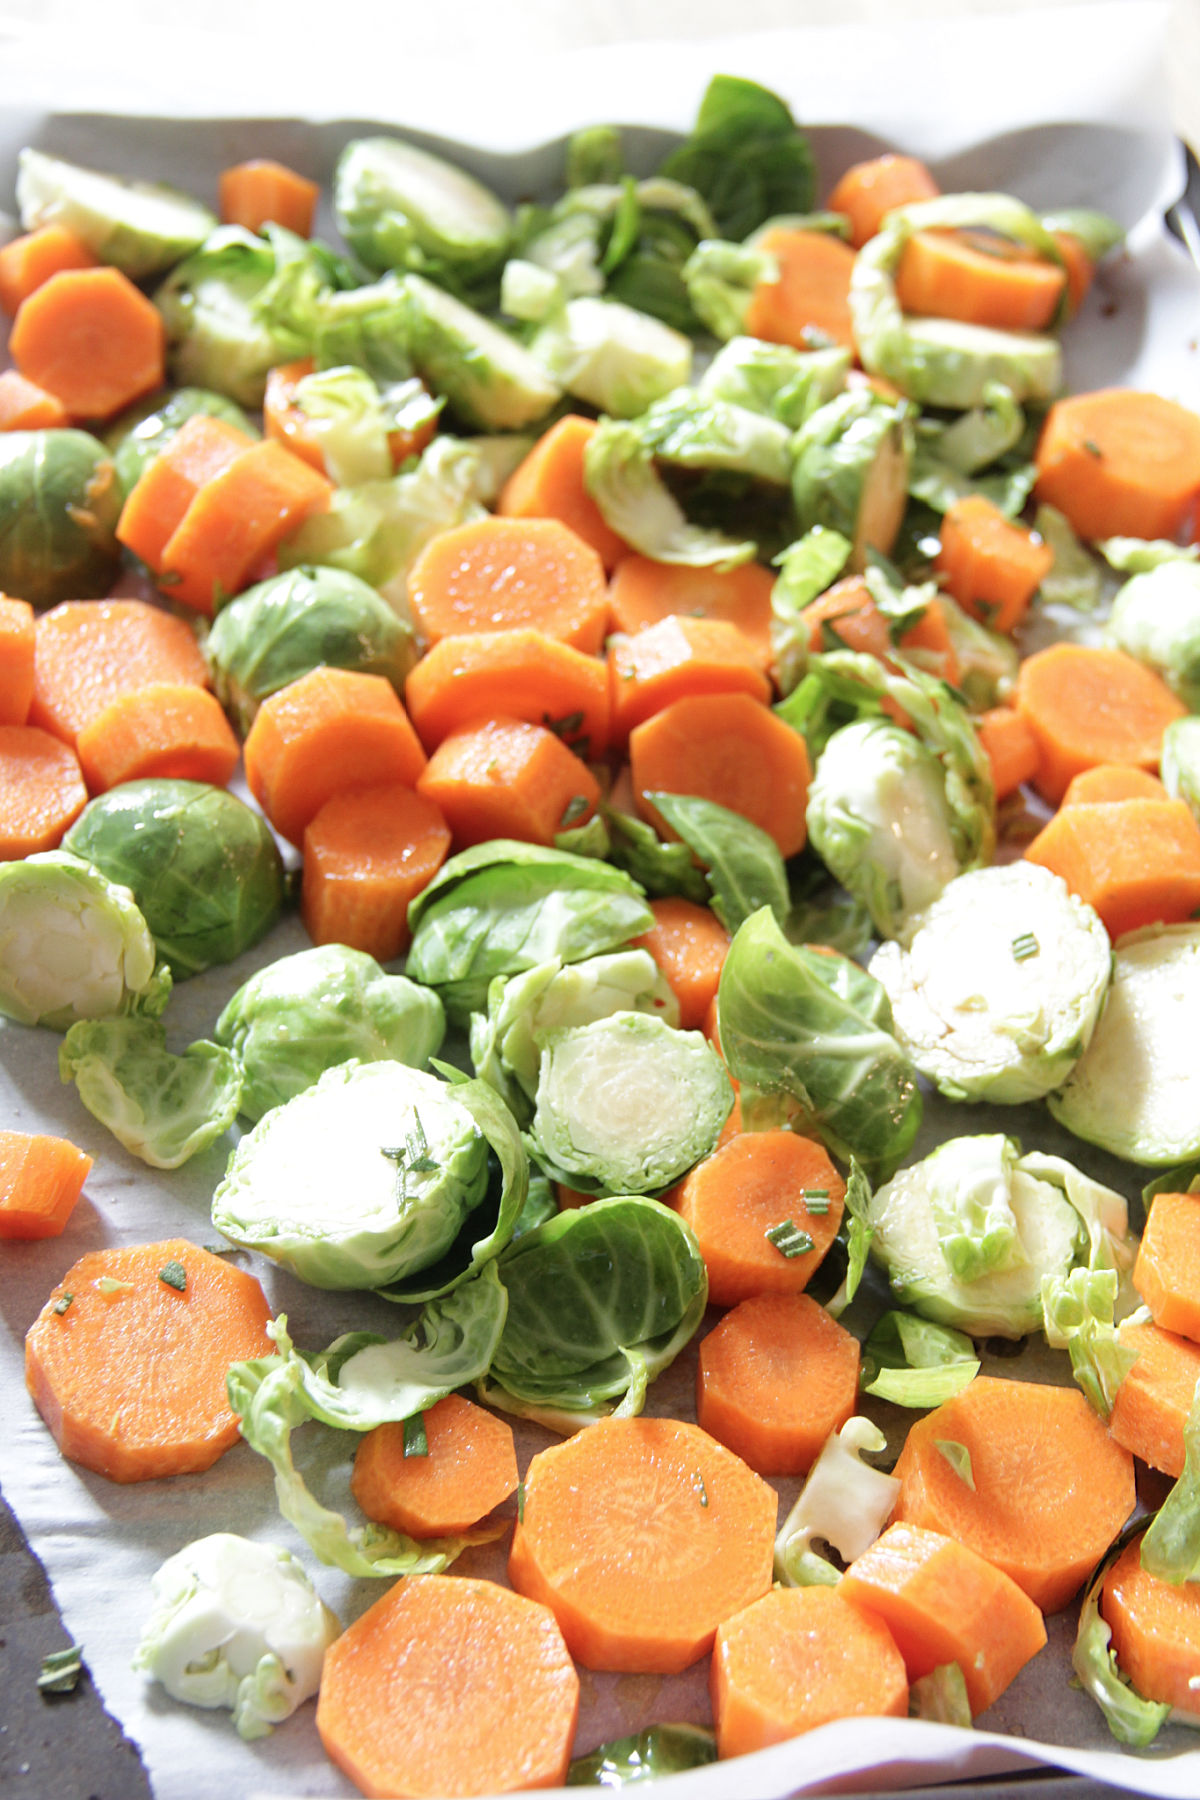 Chopped Brussels Sprouts and Carrots on a sheet pan